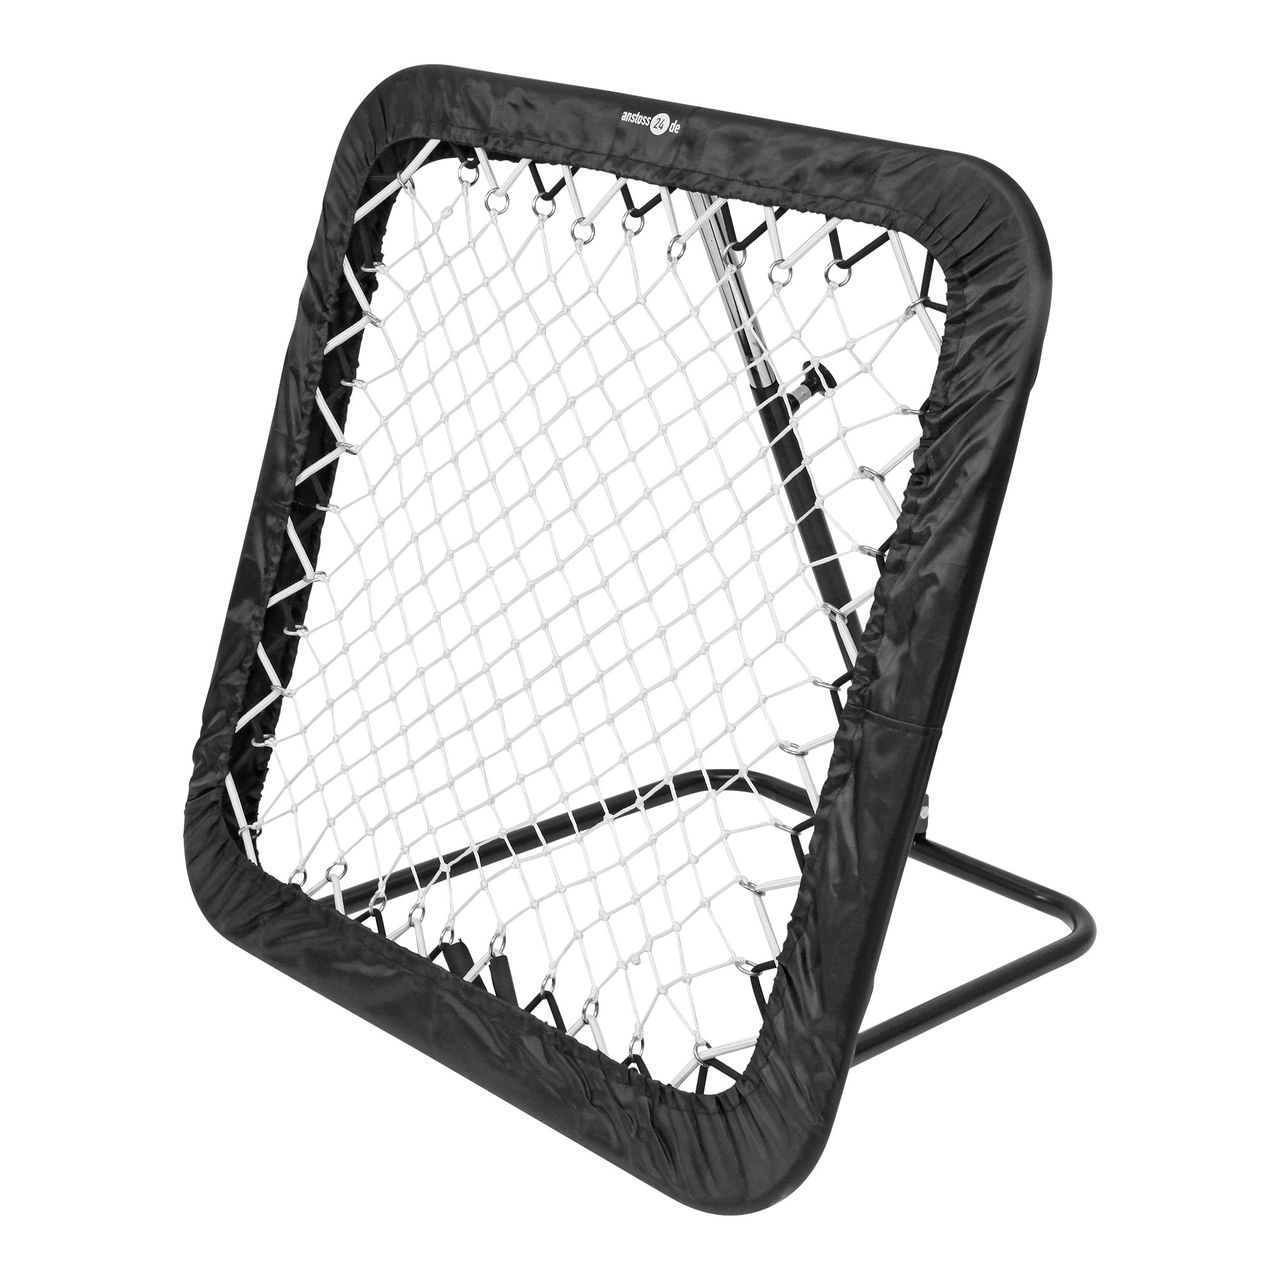 ELF Sports Fussball - Rebounder